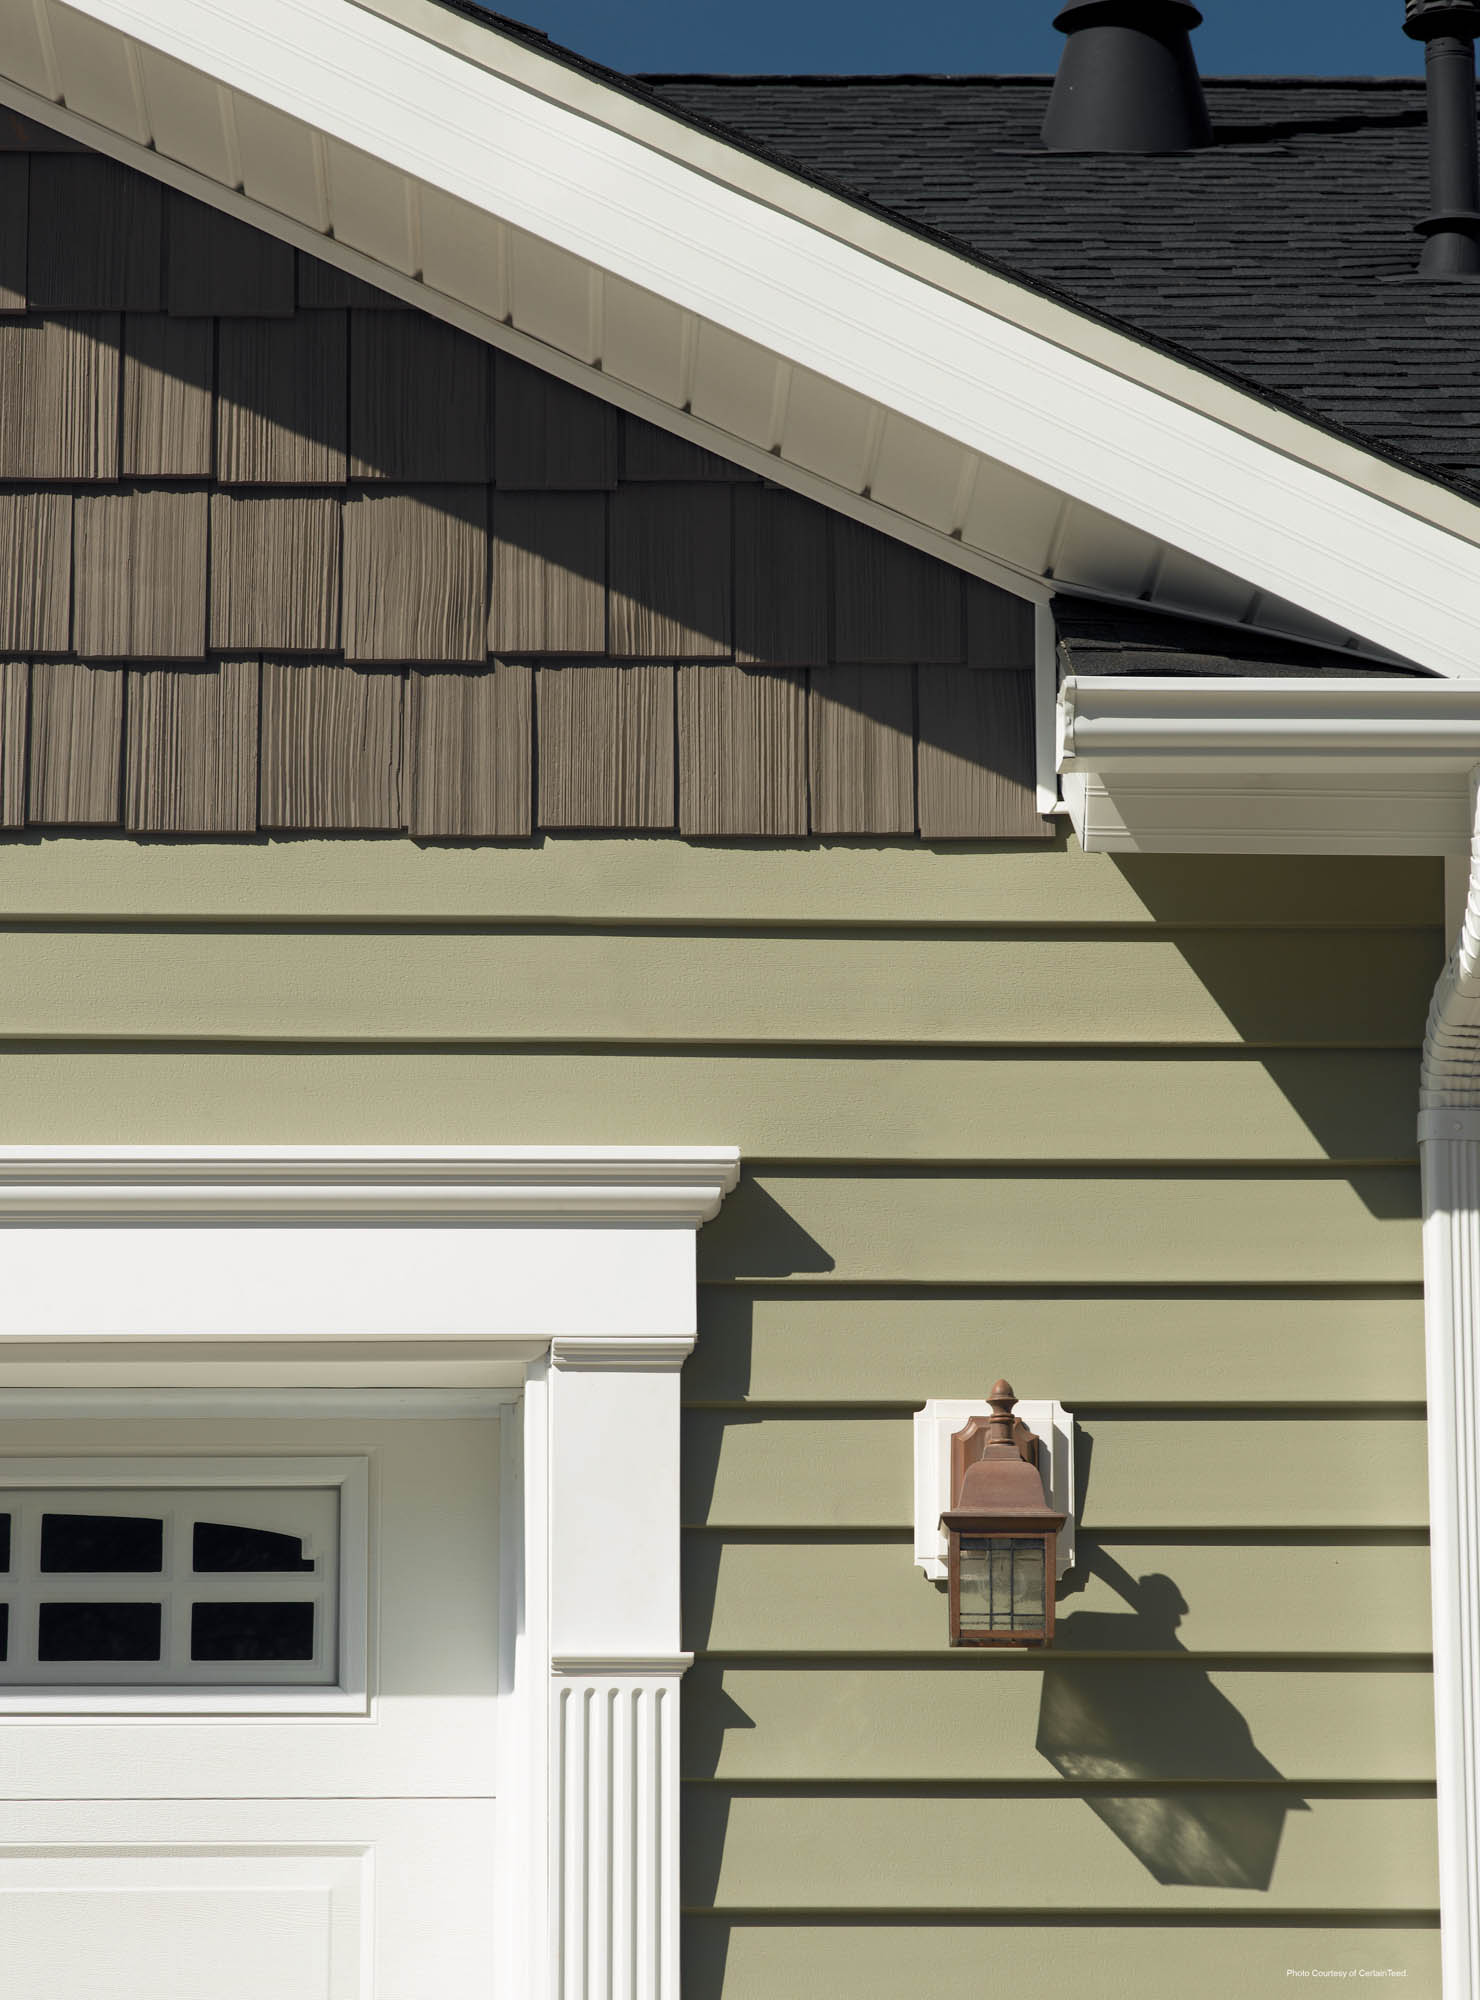 Testing Shows Insulated Siding Reduces Energy Use And